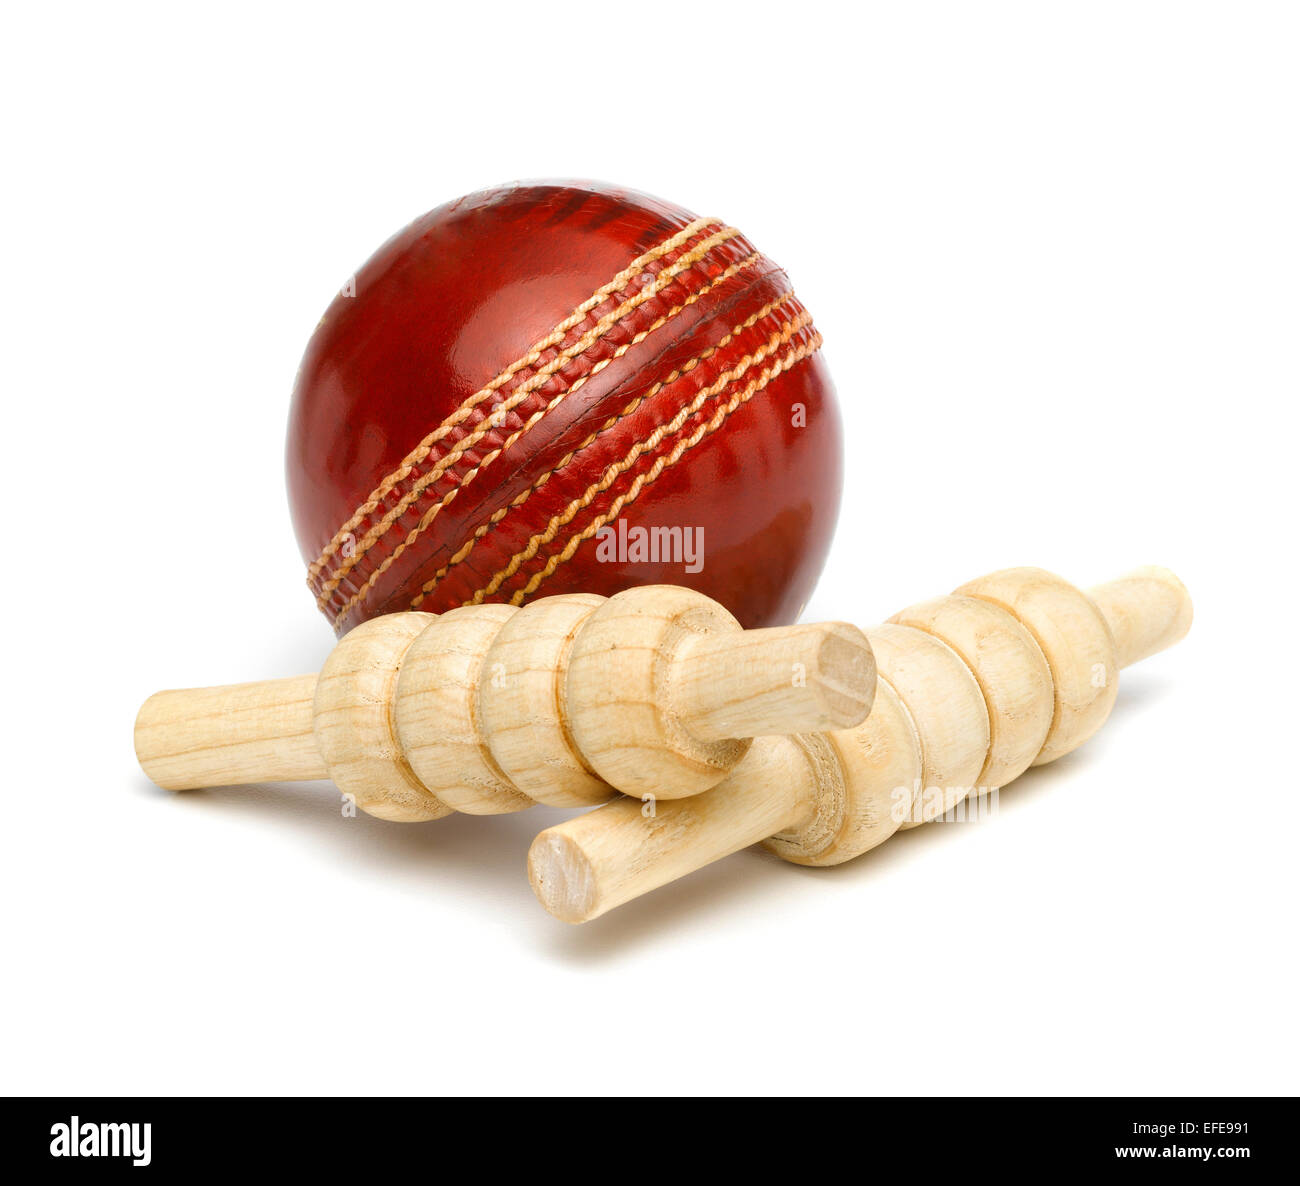 Red Leather Cricket Ball with Bails - Stock Image